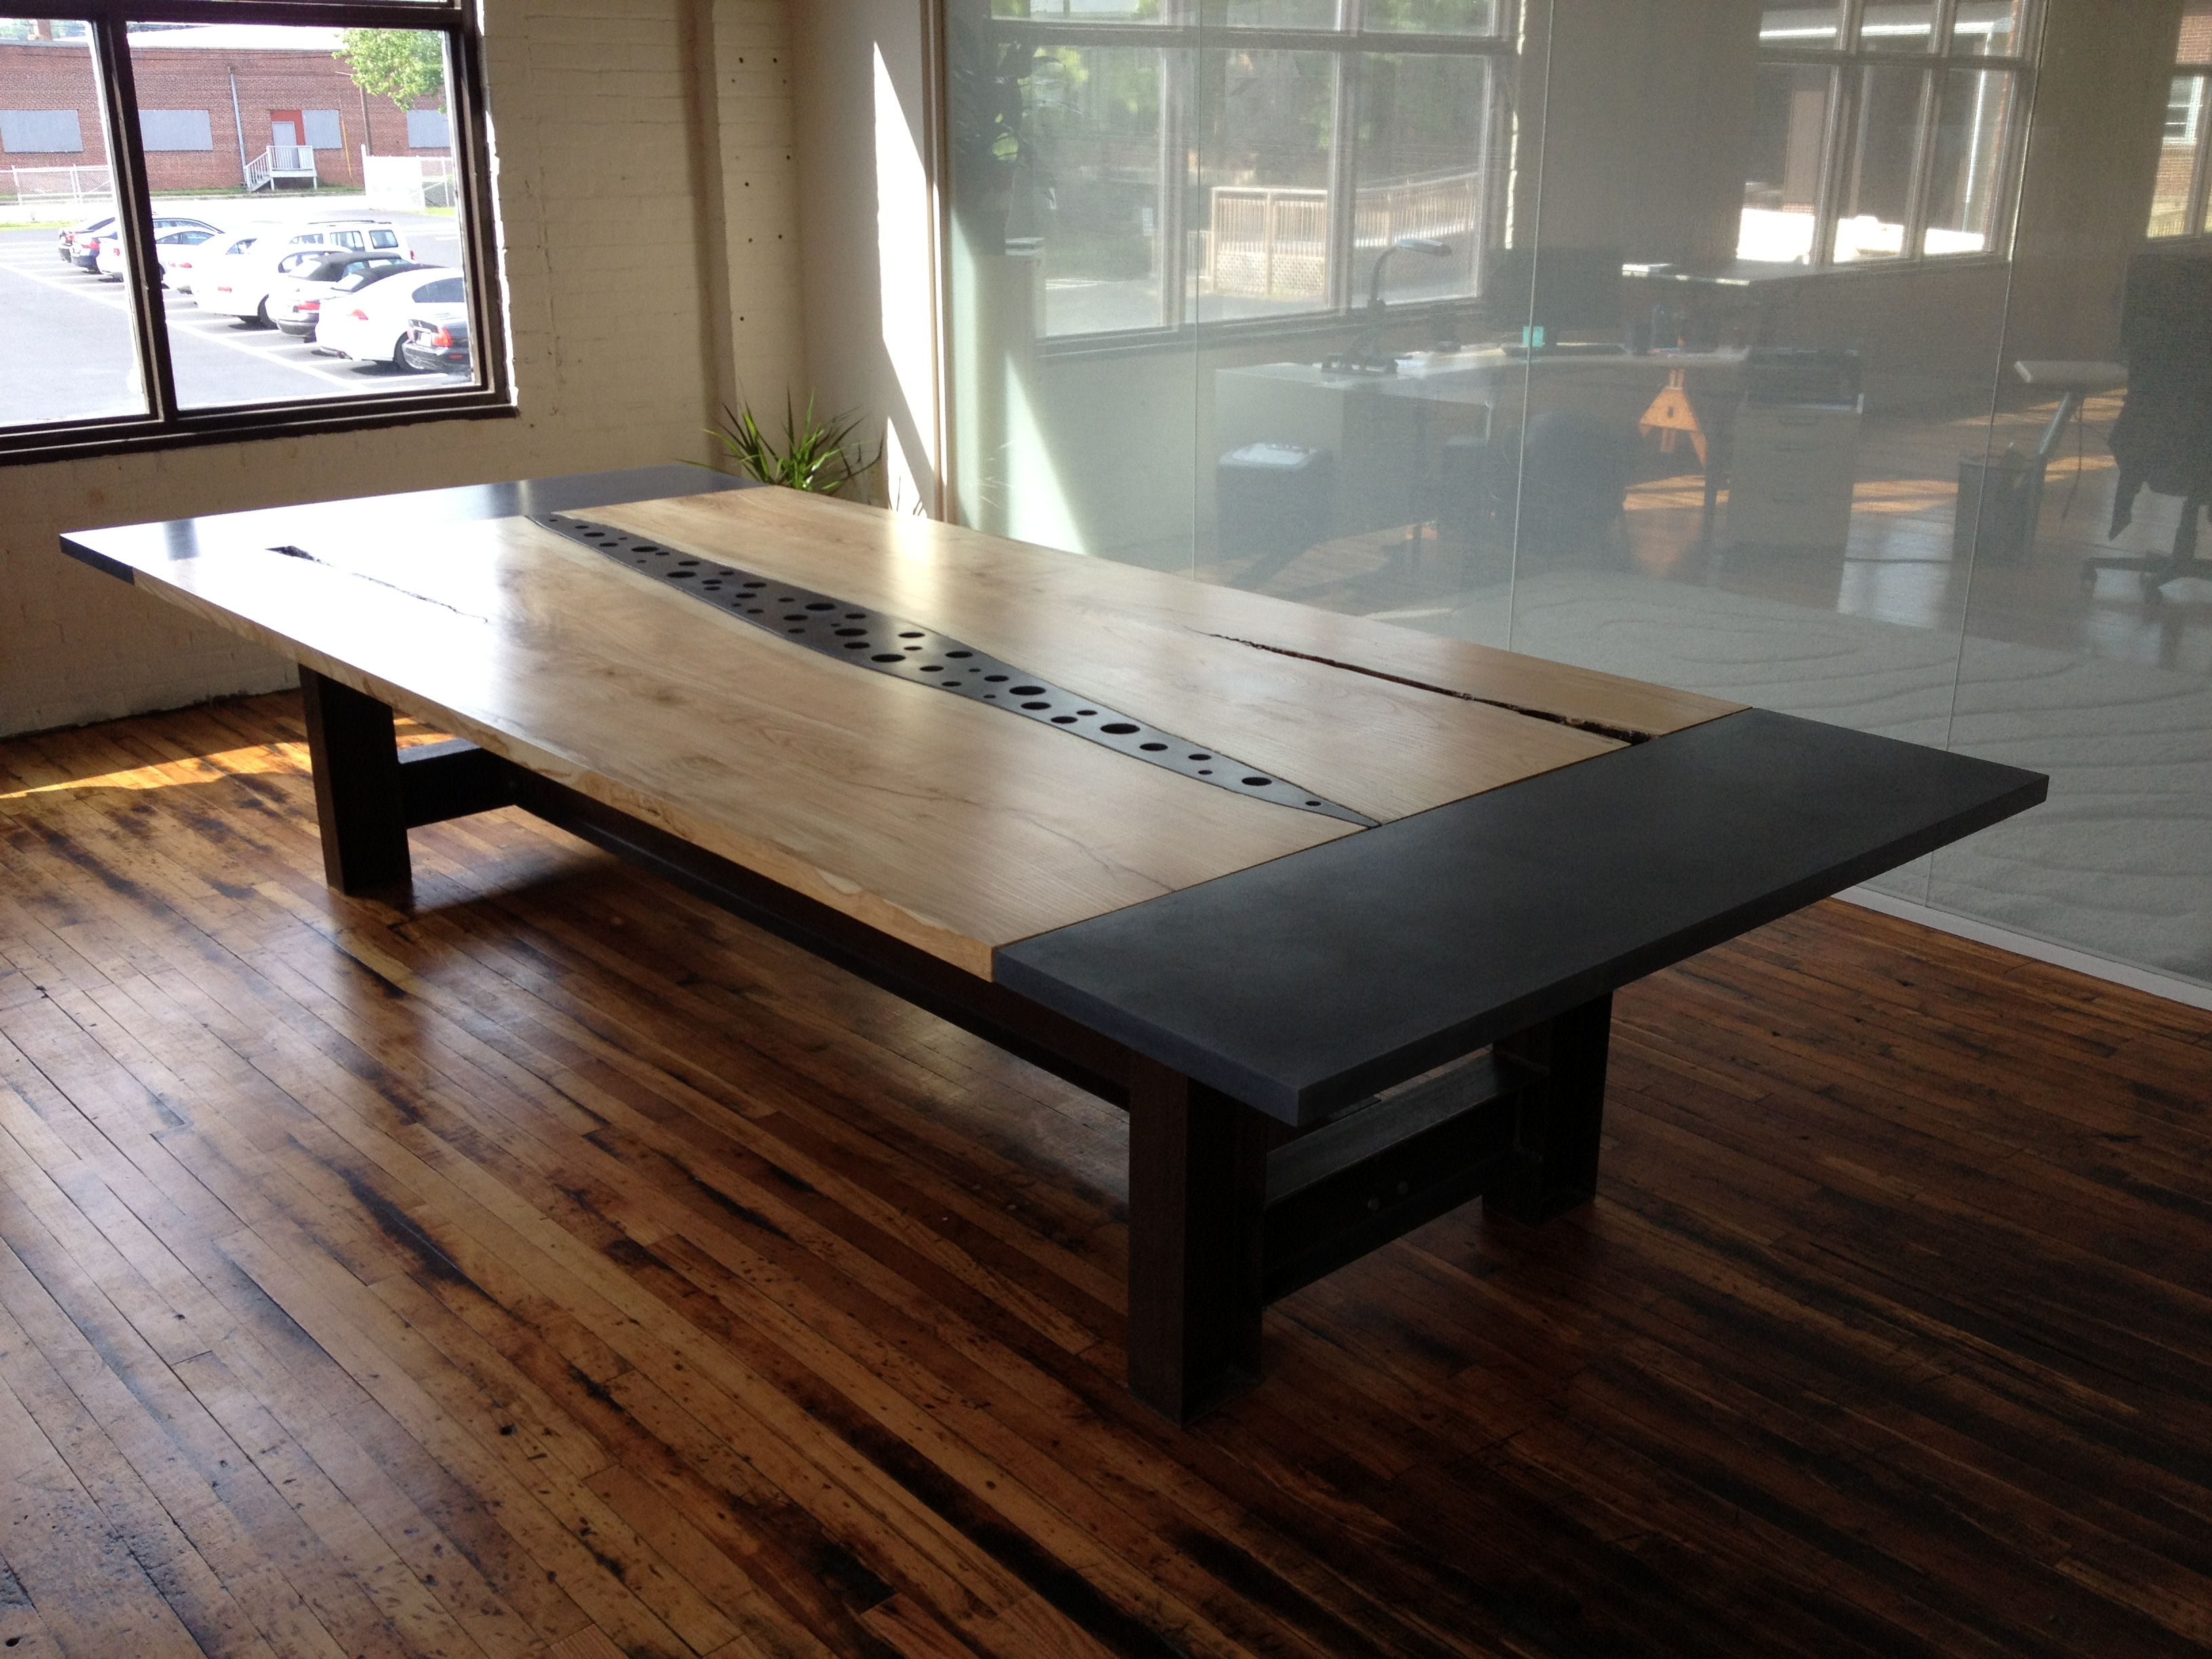 Concrete Wood Slabs Steel Conference Table Seth Cluley - Wood slab conference table